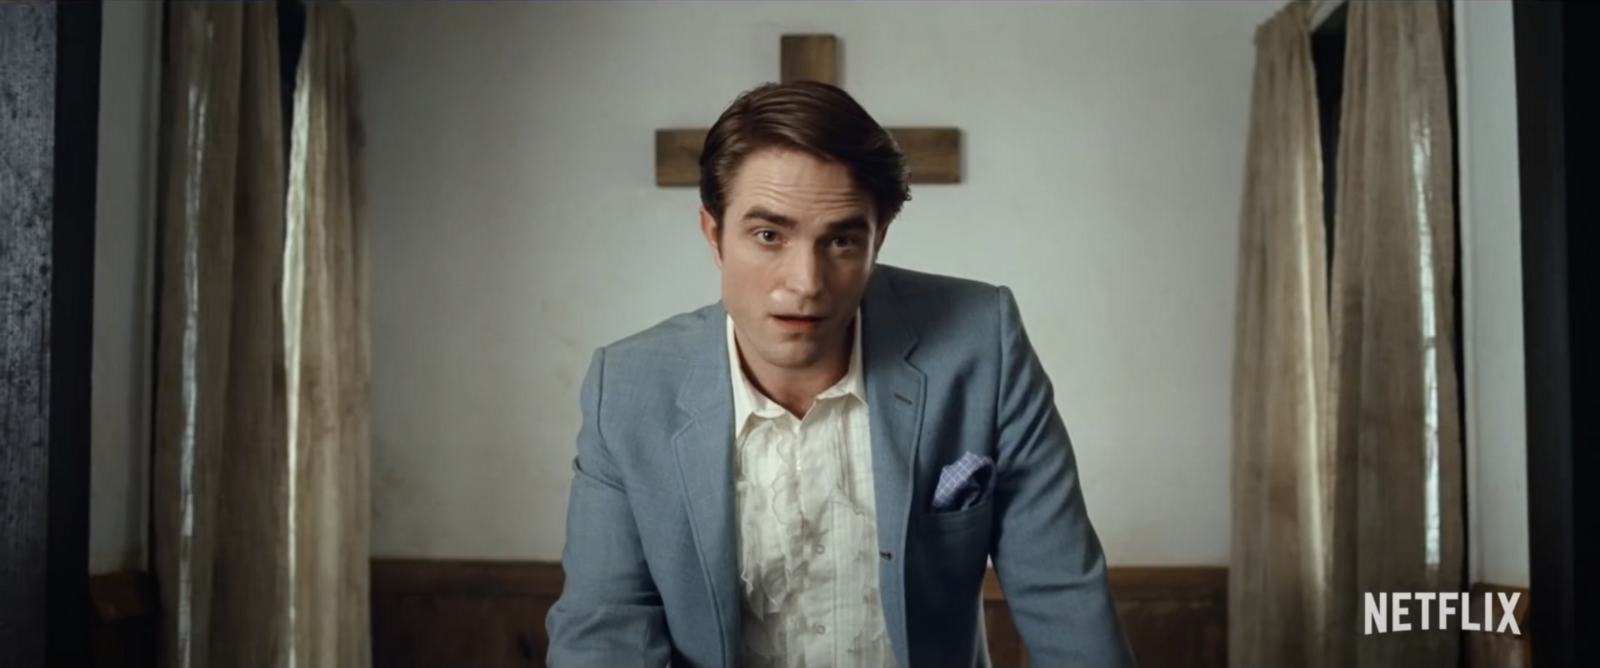 Robert Pattinson in Netflix's The Devil All the Time